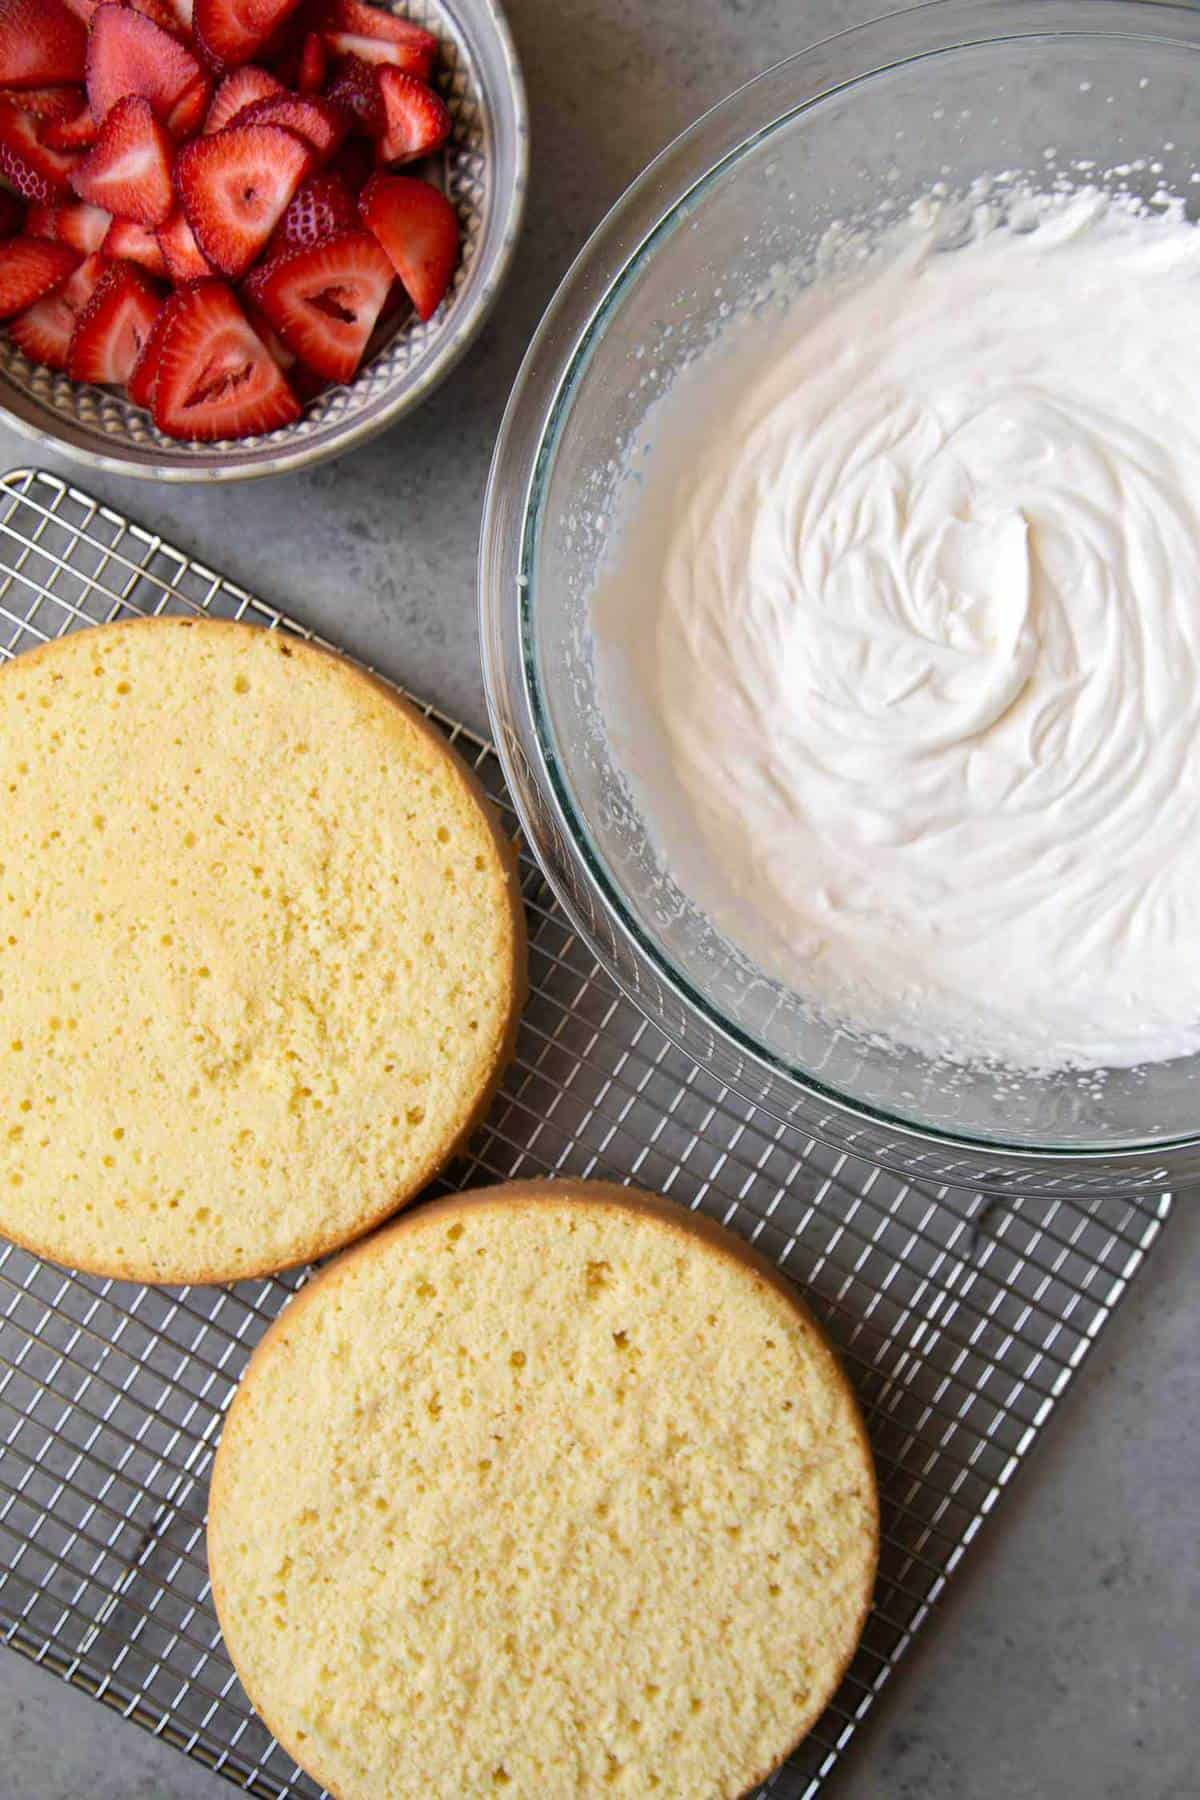 sponge cake layers, whipped cream, and sliced strawberries.